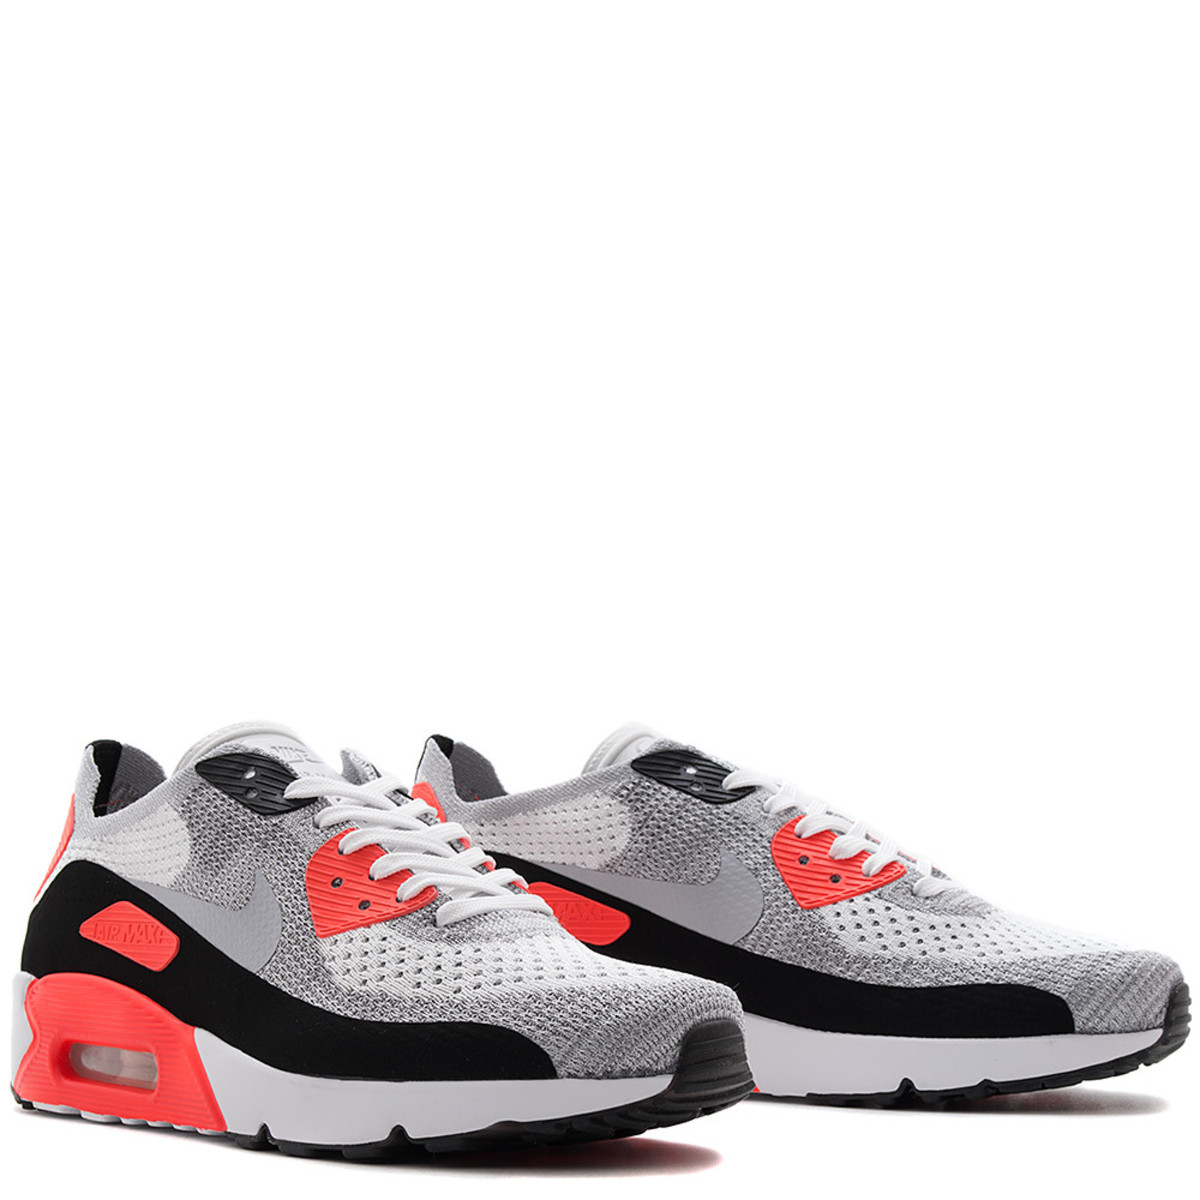 Air Max 90 'Side B' Release Date. Nike Launch BE